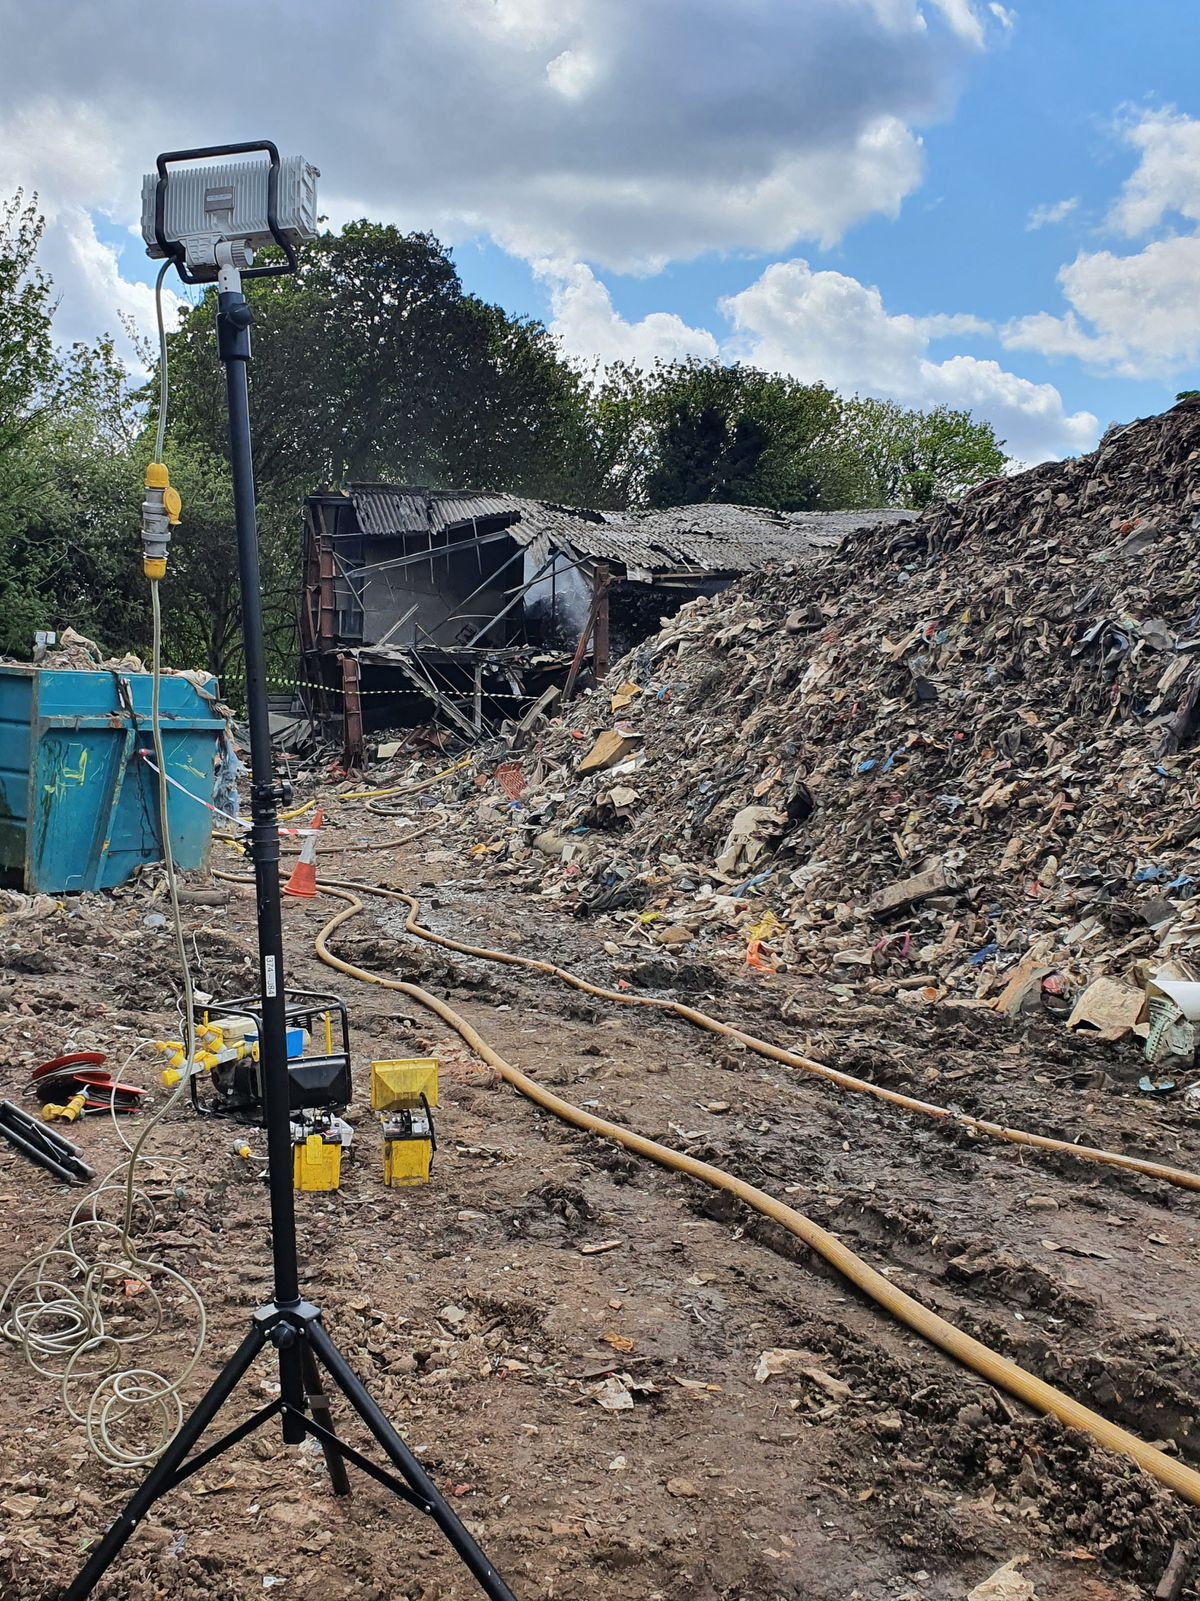 Fire officers managed to stop the fire from spreading to nearby buildings and a nature reserve